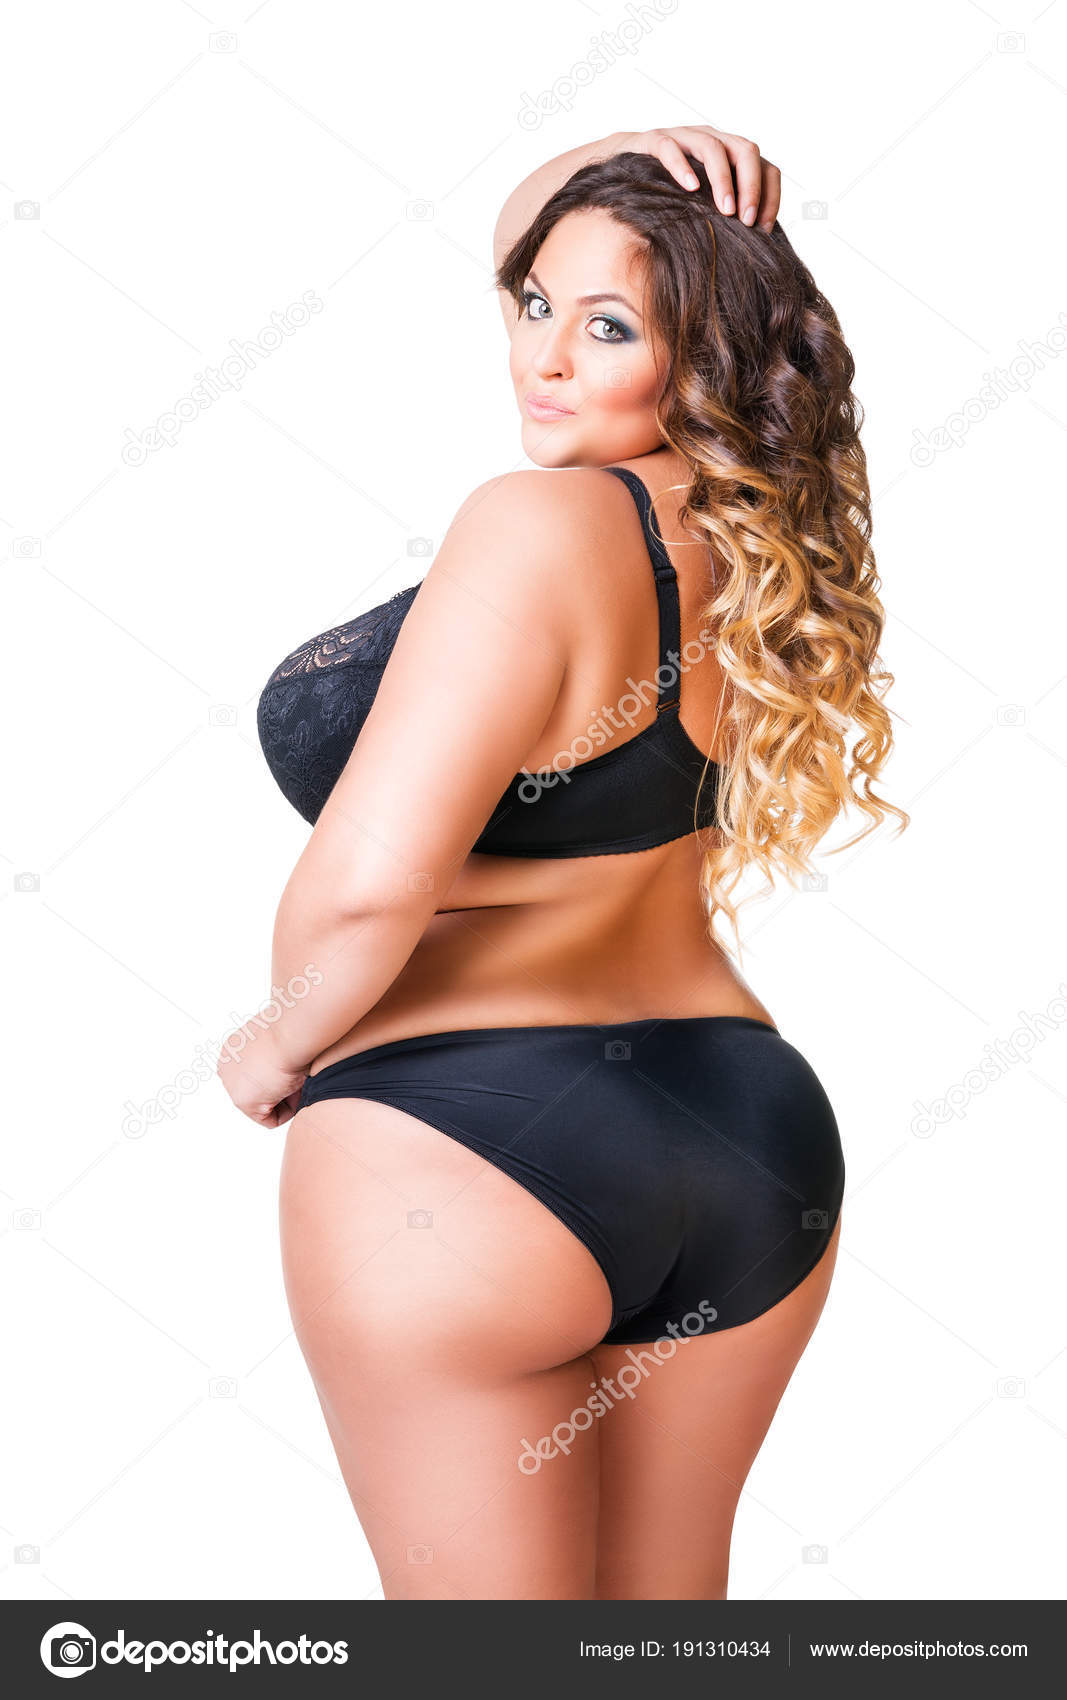 Chubby black women on lingerie